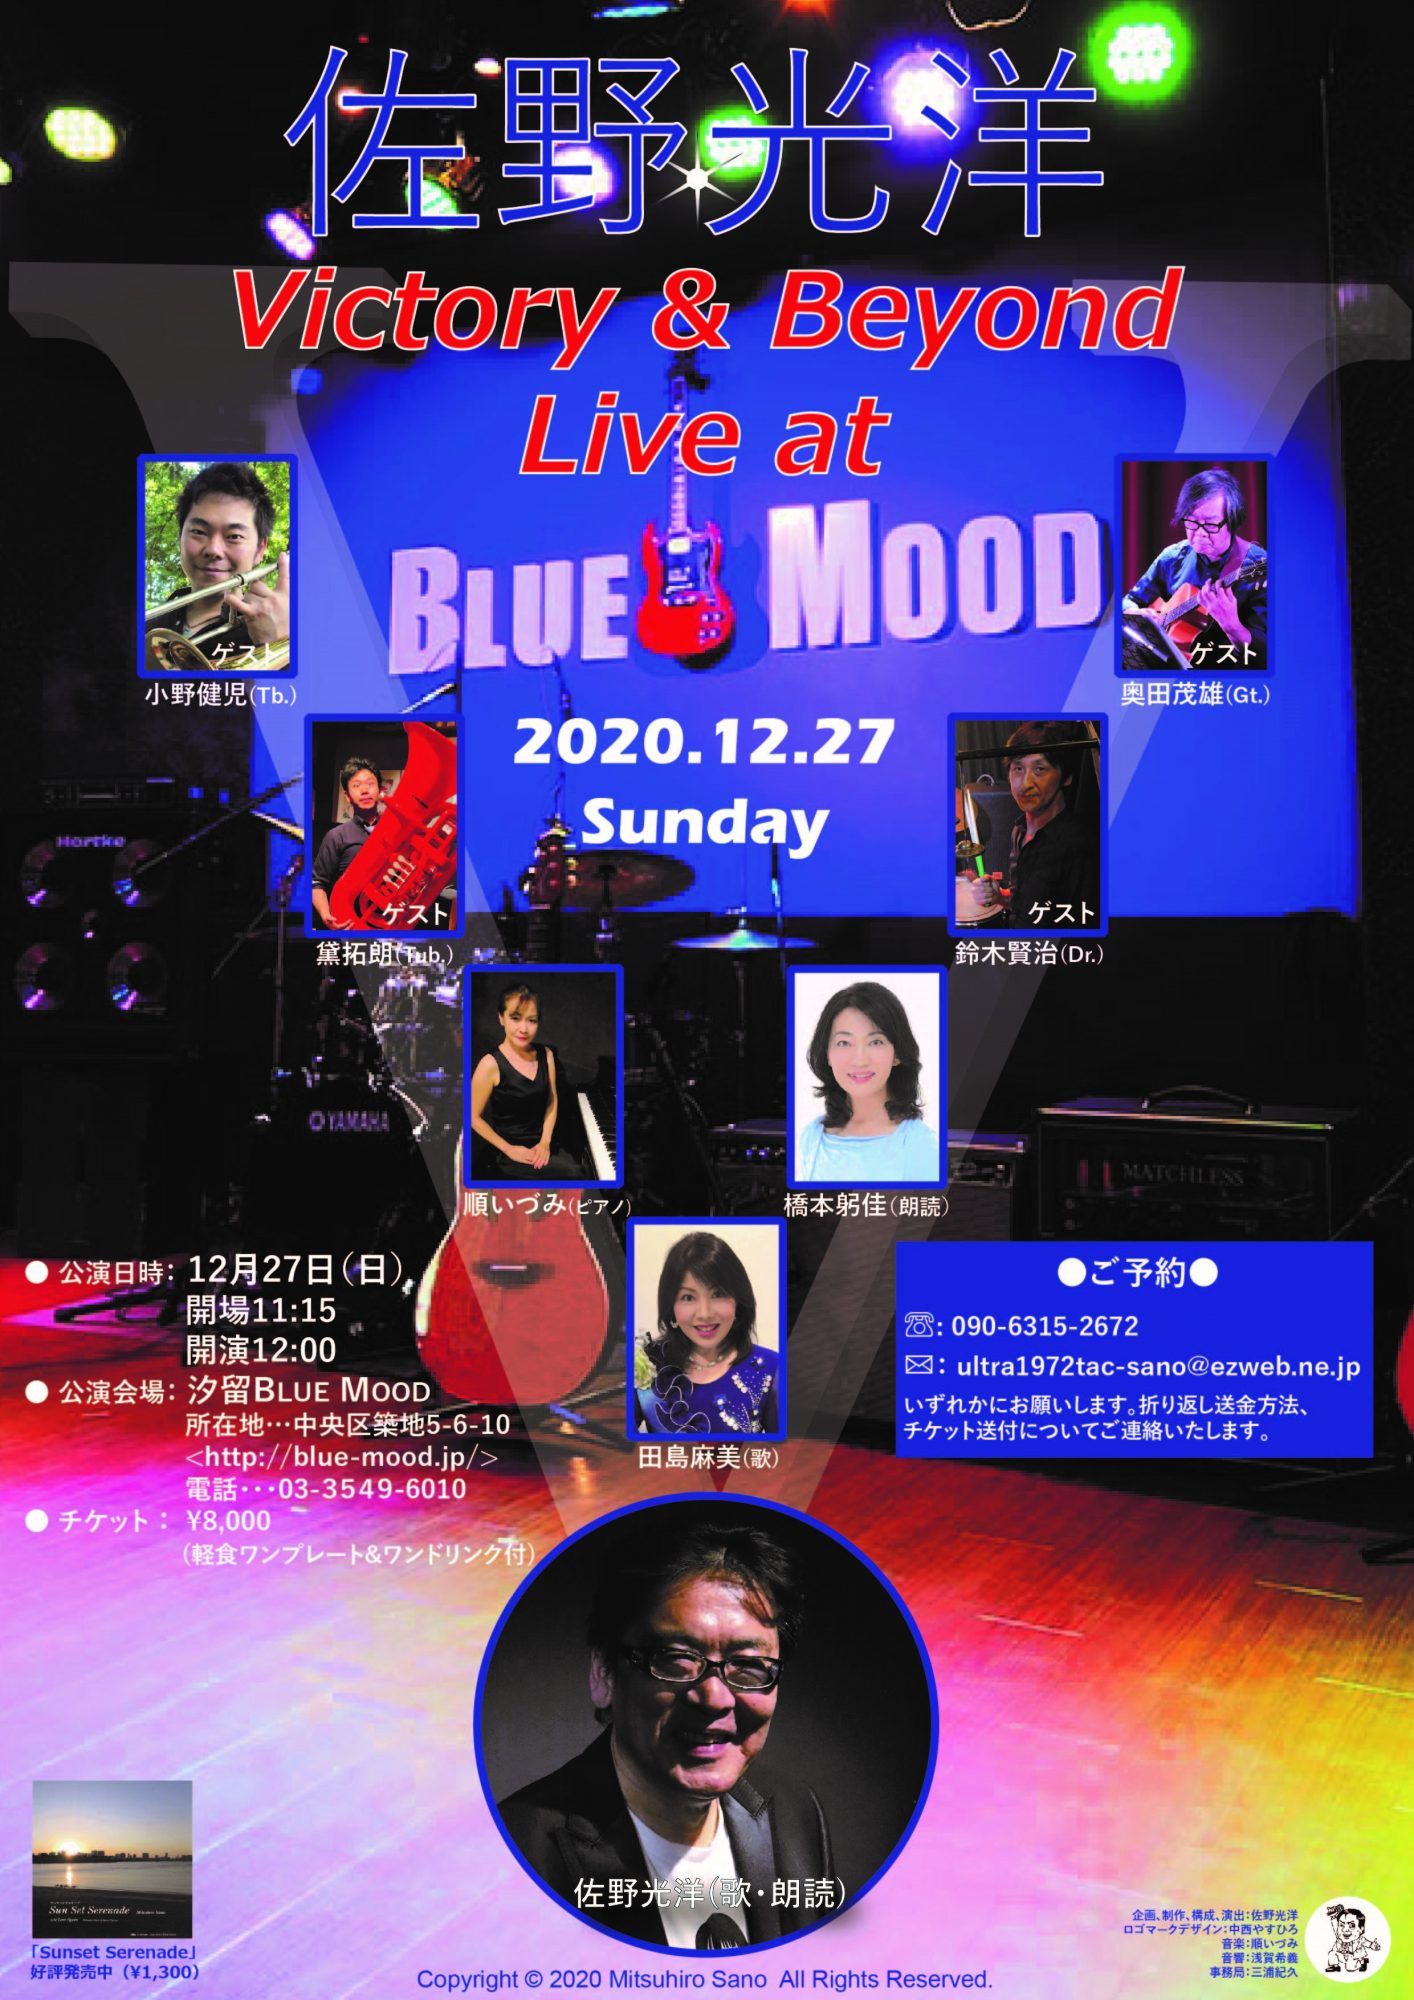 Victory&Beyond Live at Blue Mood